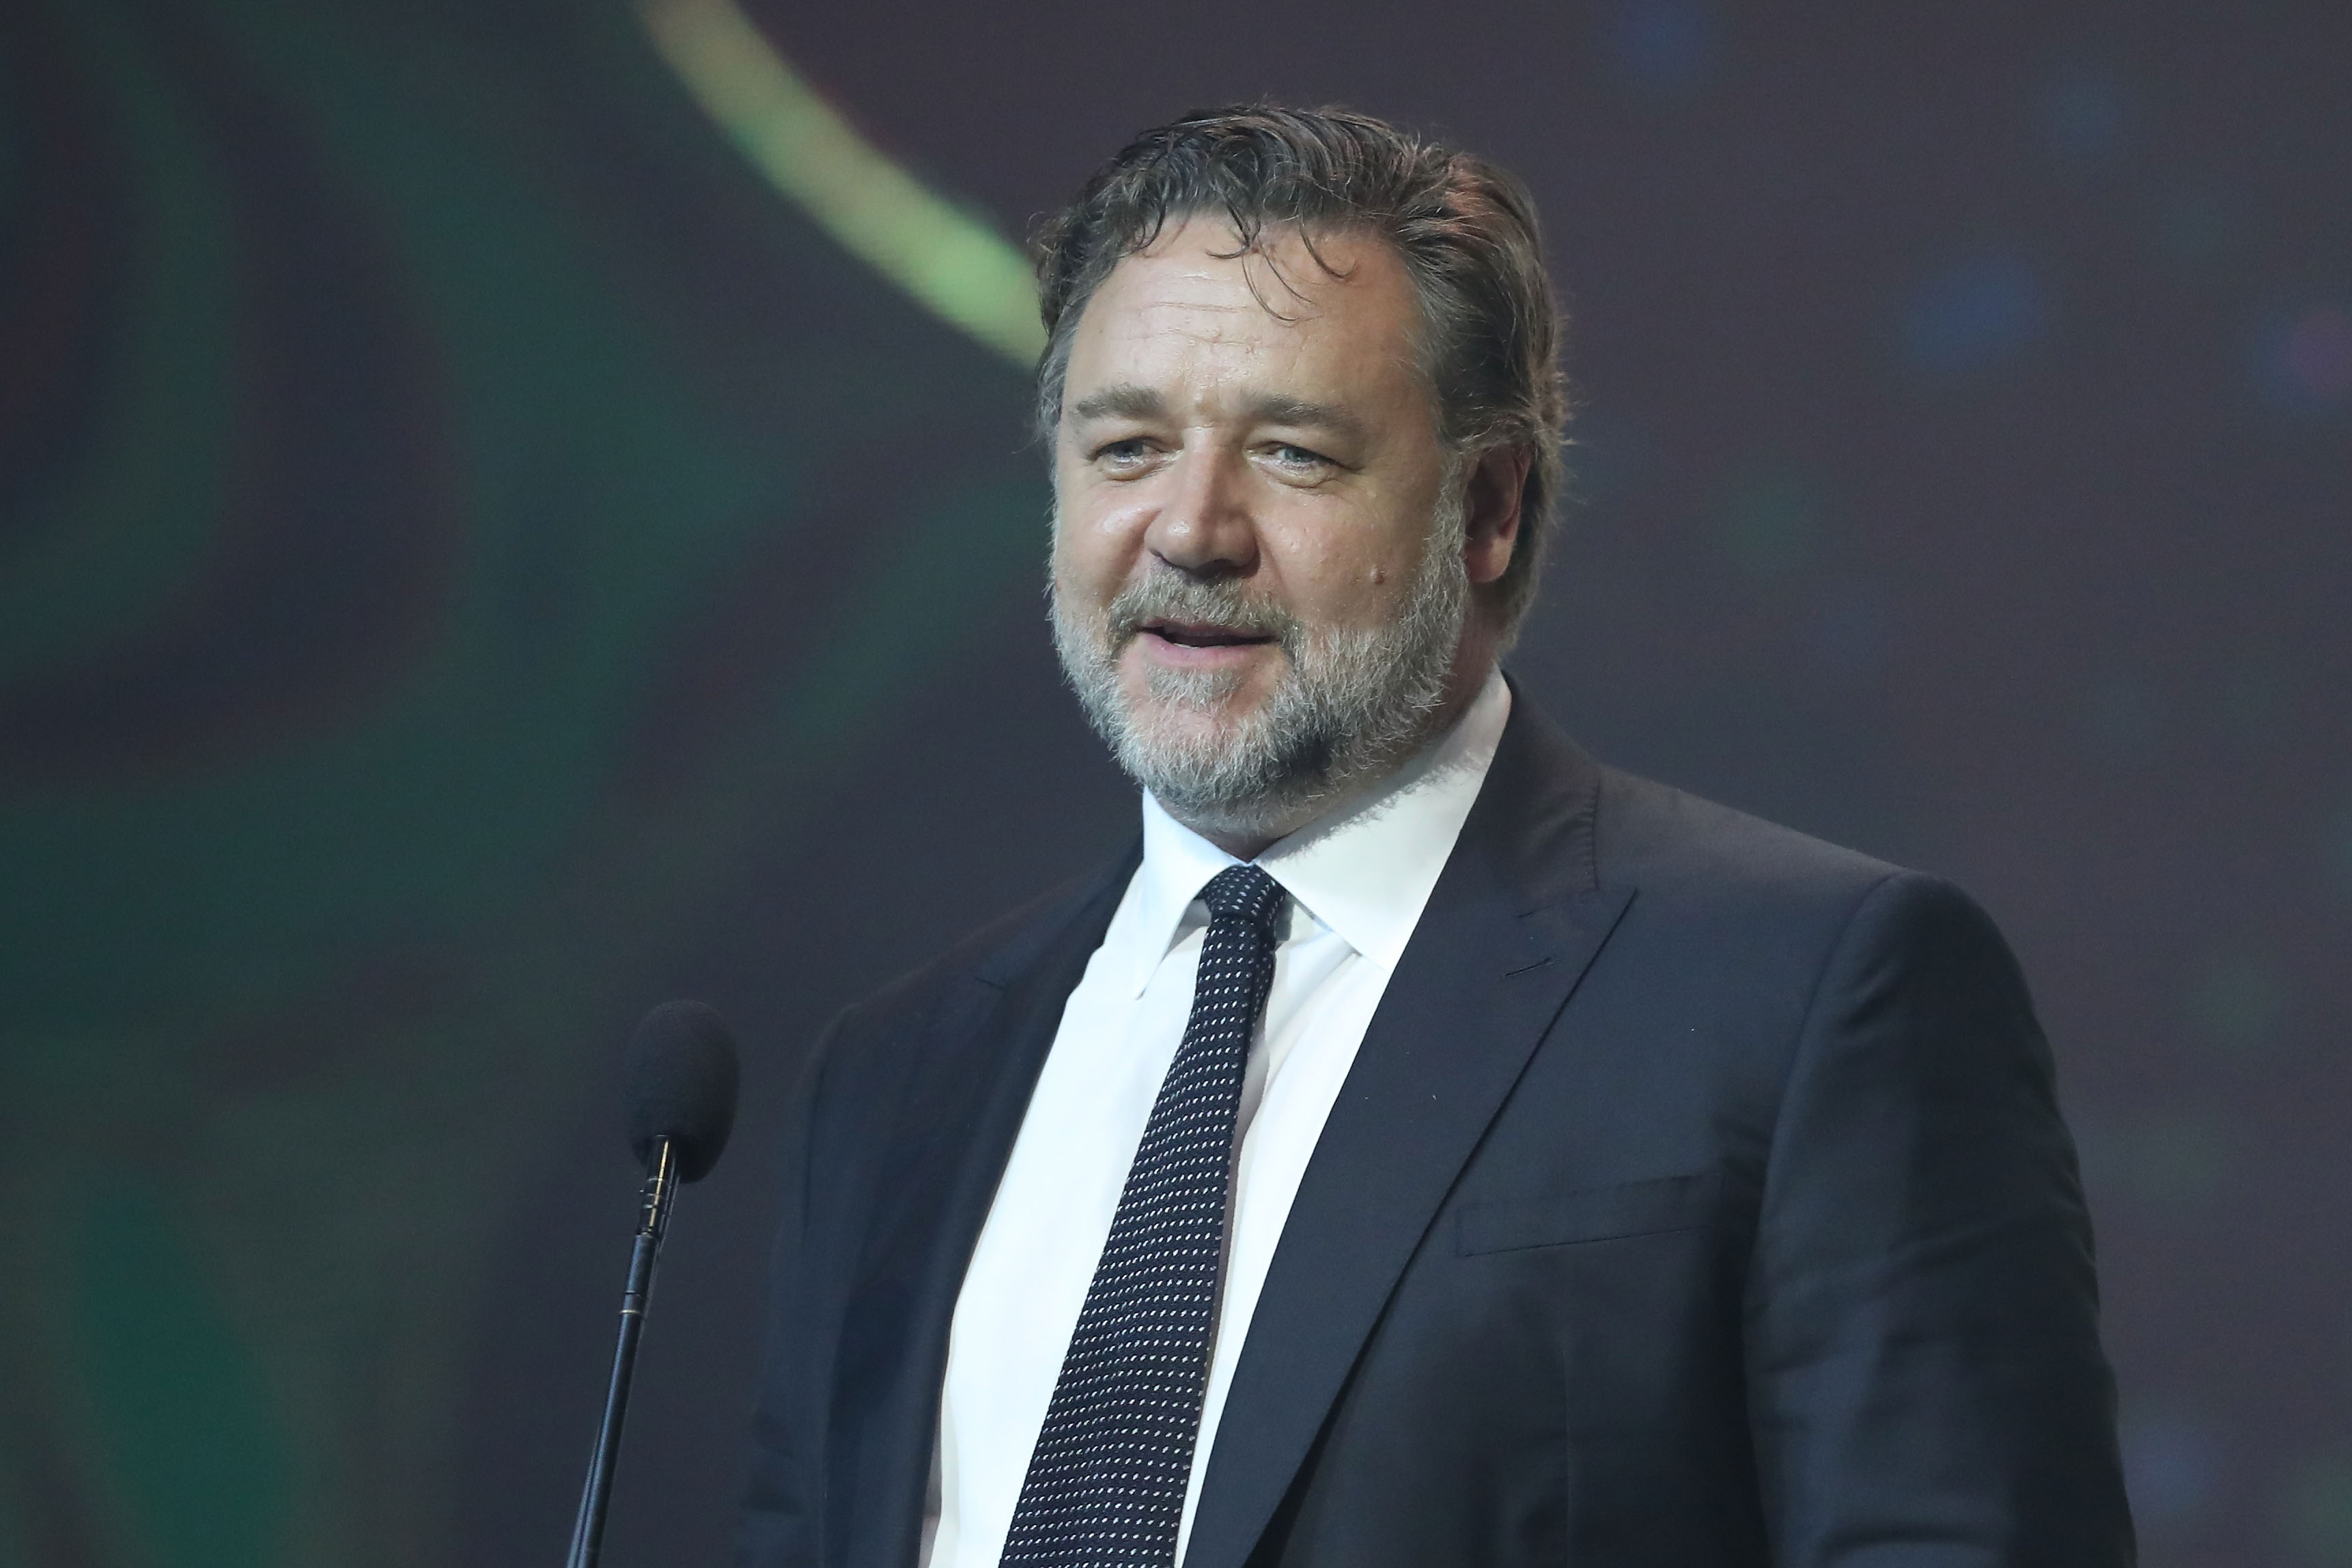 Russell Crowe presents the AACTA Award for Best Asian Film Presented By PR Asia during the 7th AACTA Awards Presented by Foxtel | Ceremony at The Star on December 6, 2017 in Sydney, Australia.